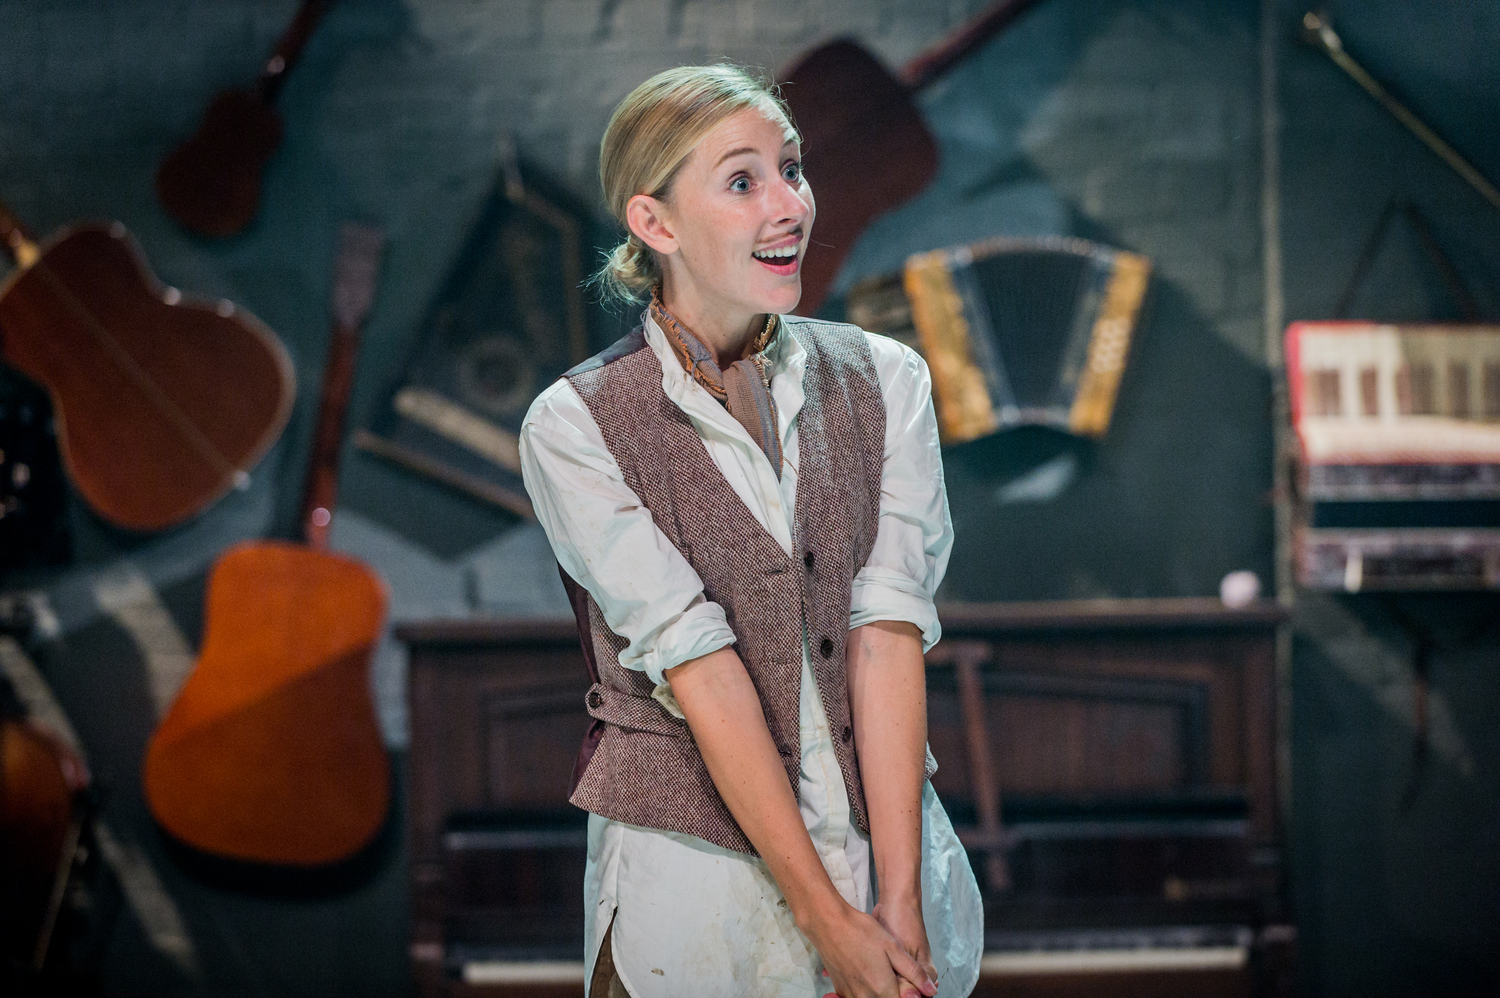 Sally Scott in As You Like It, composed by Jude Obermüller (photo by Robert Workman)